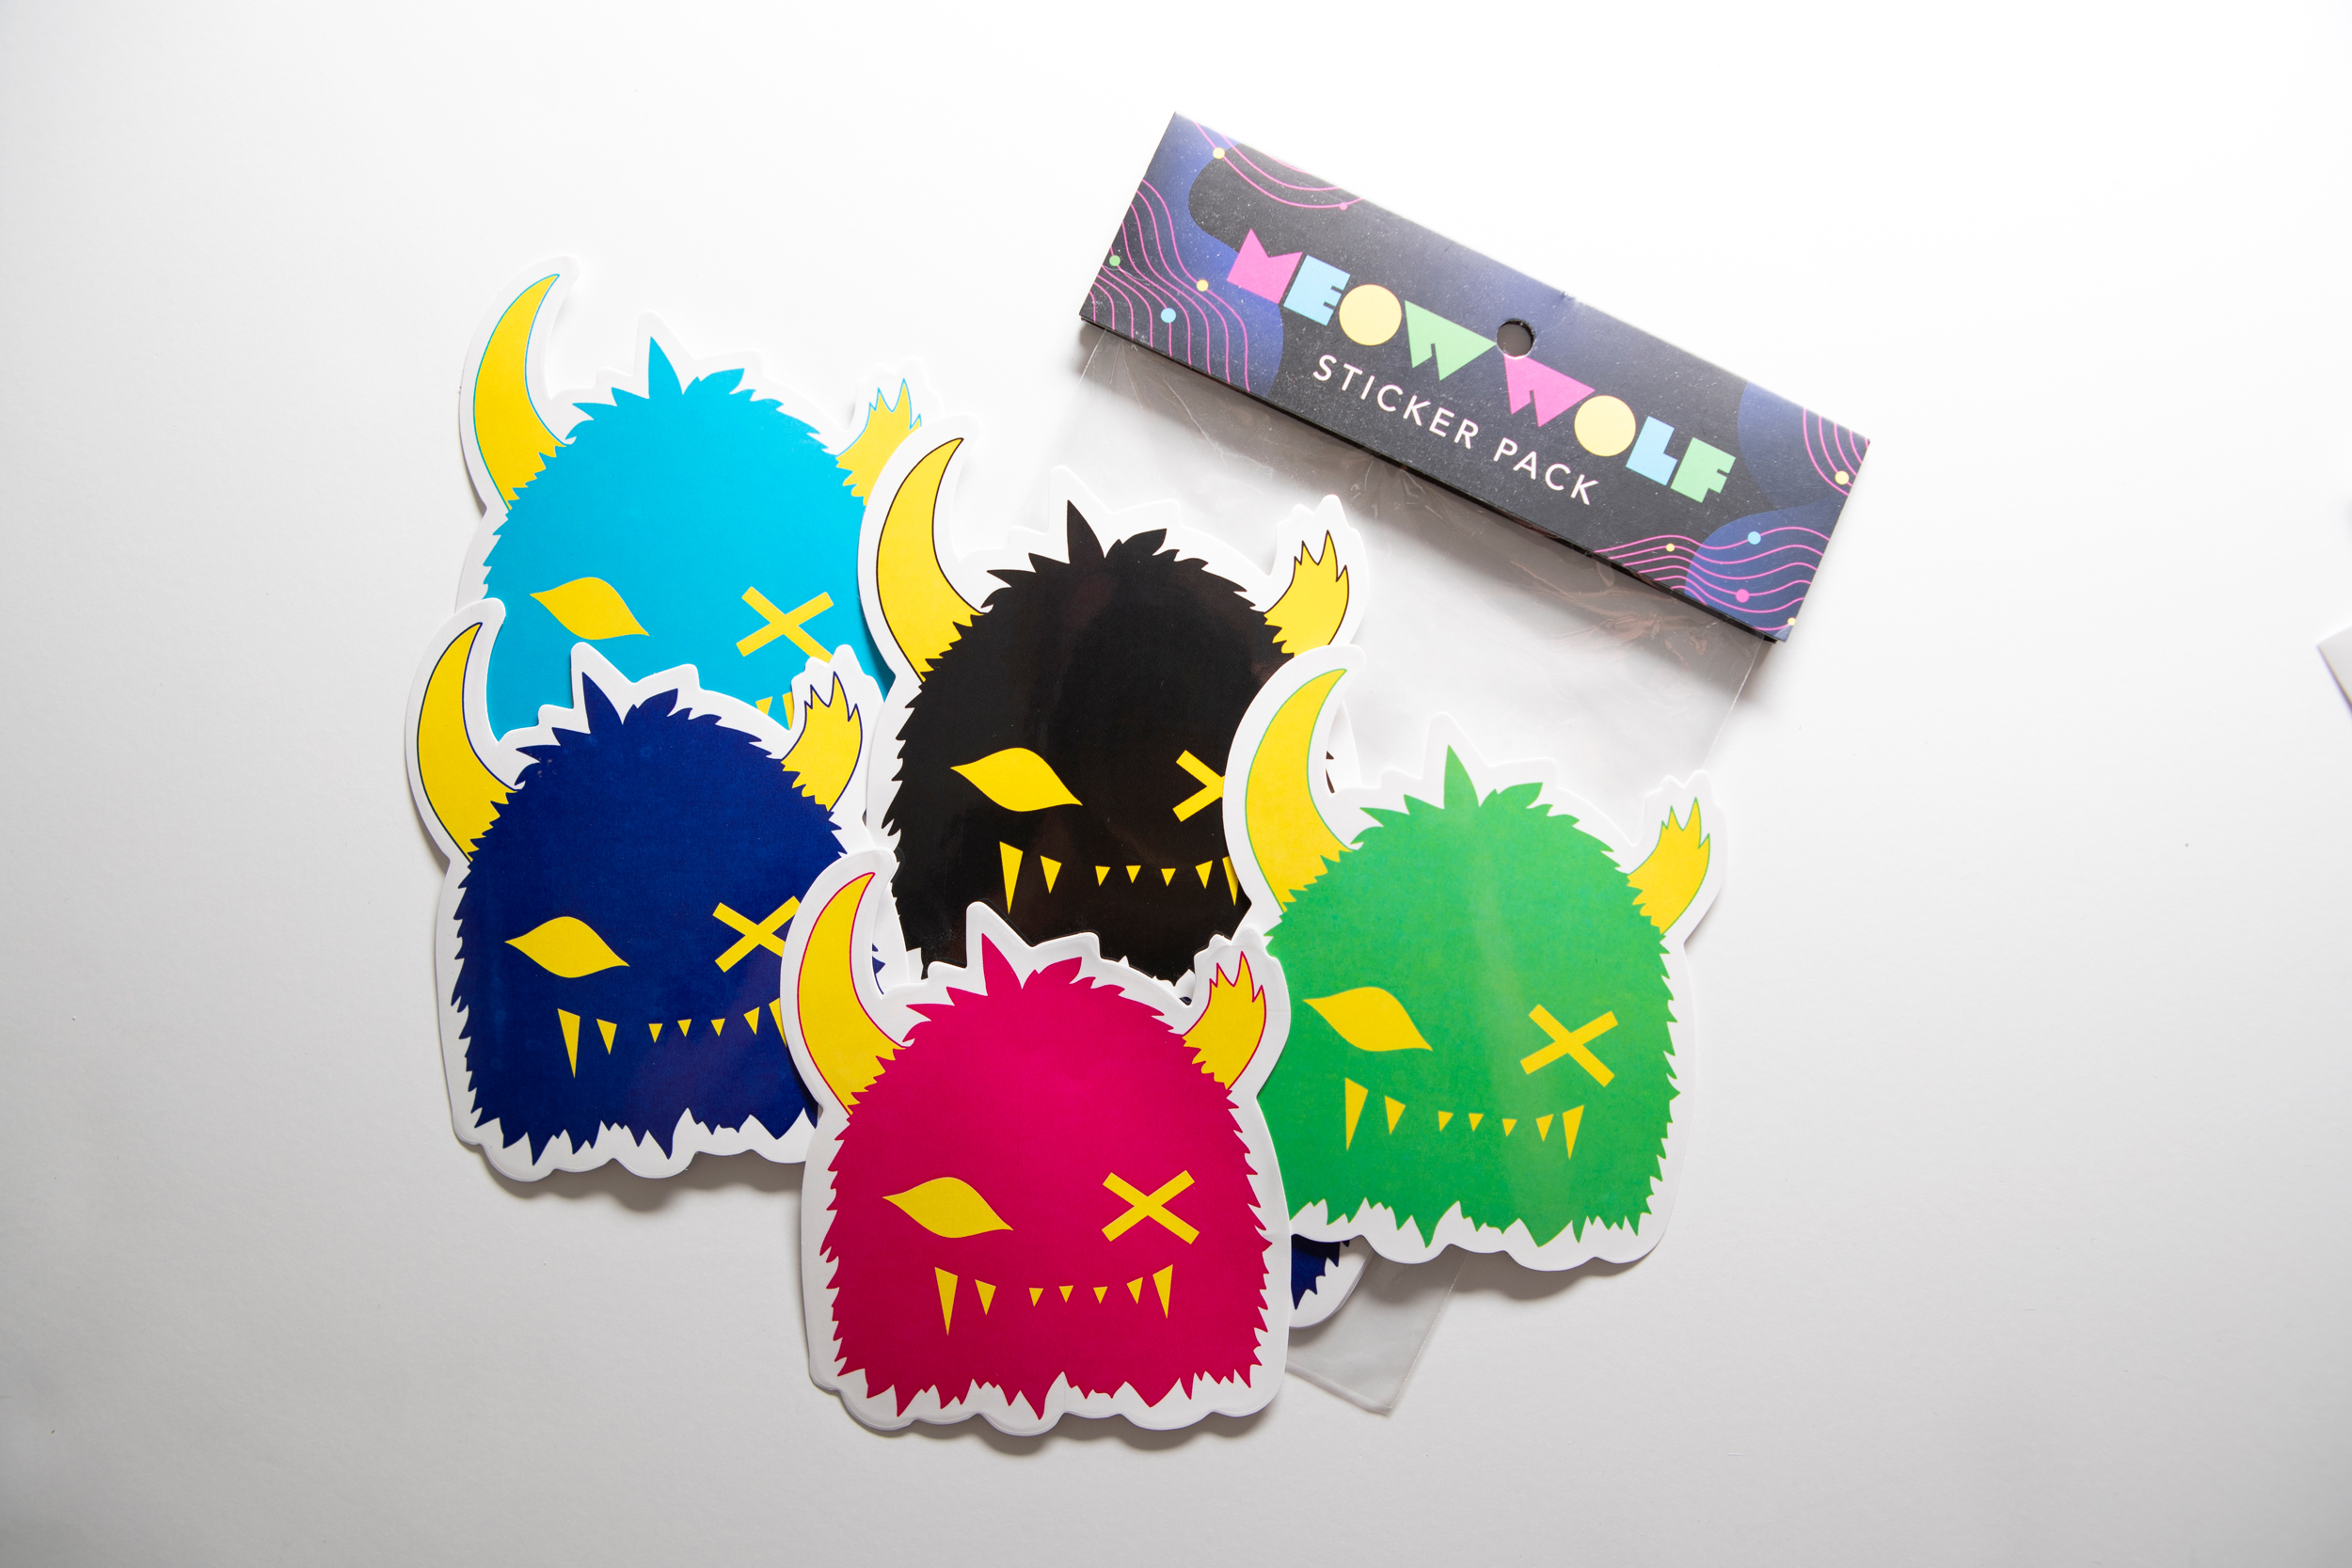 Meow Wolf Sticker packs